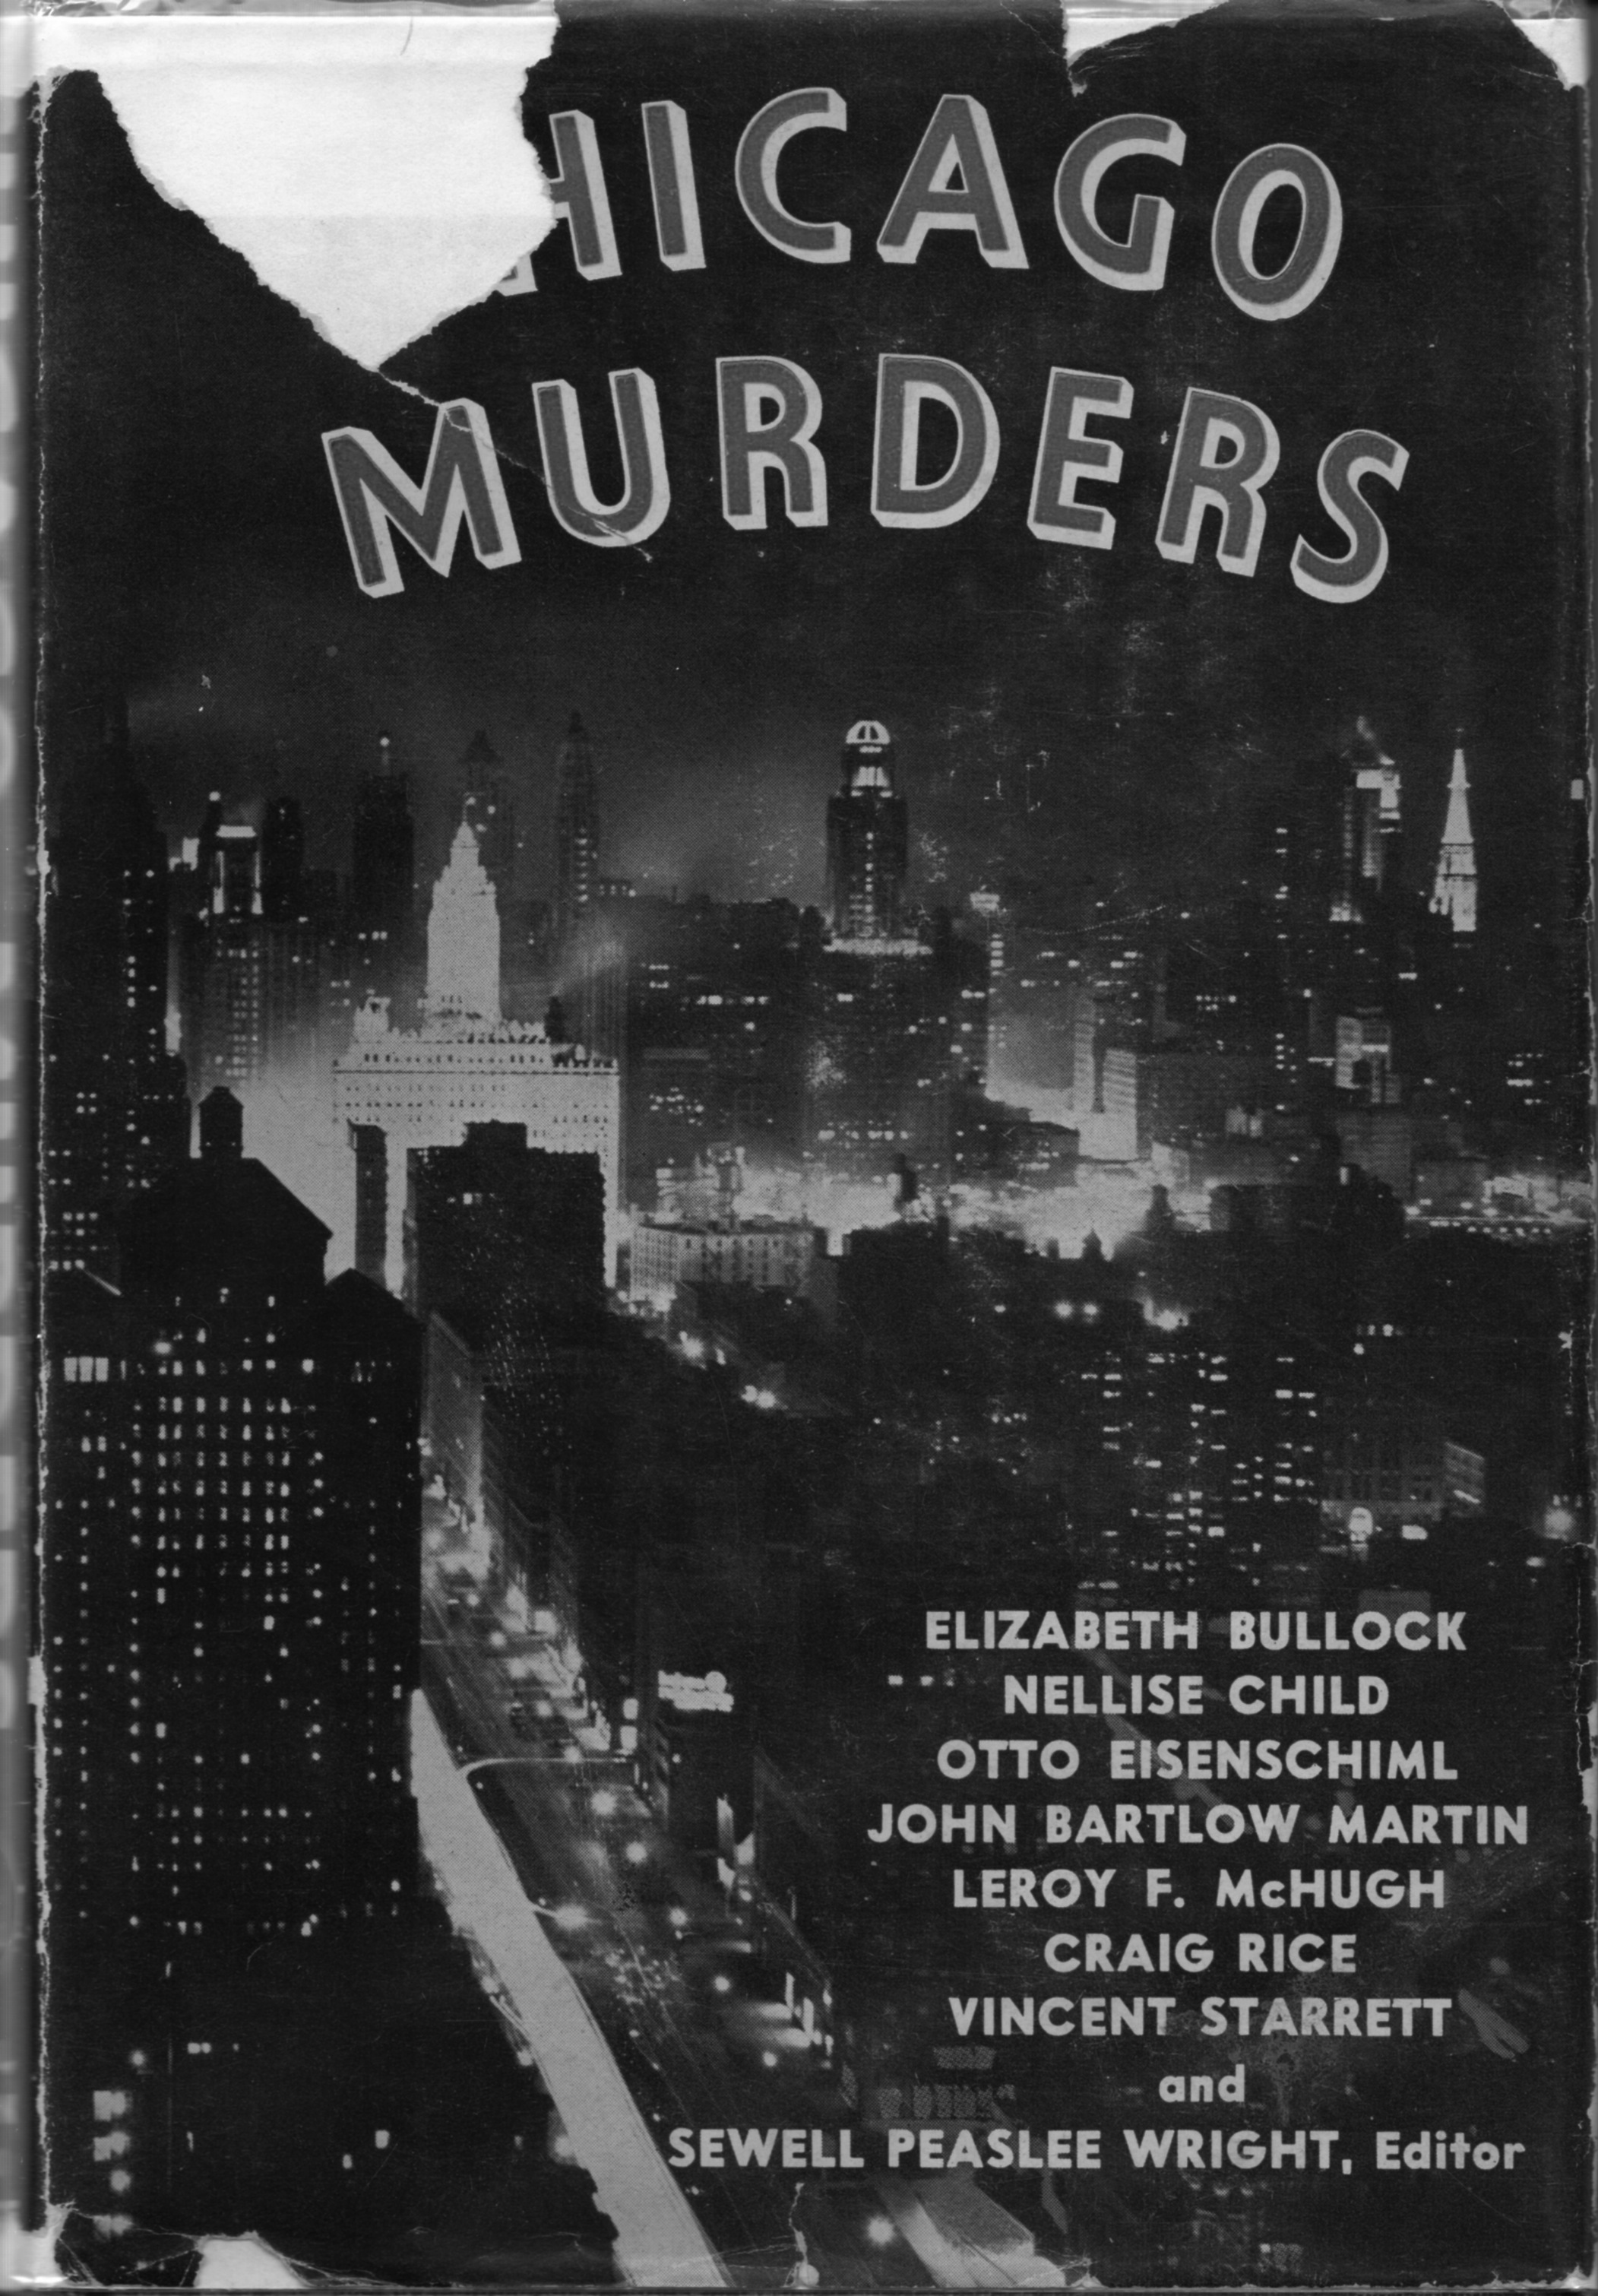 The chipped dust jacket to my copy of  Chicago Murders .